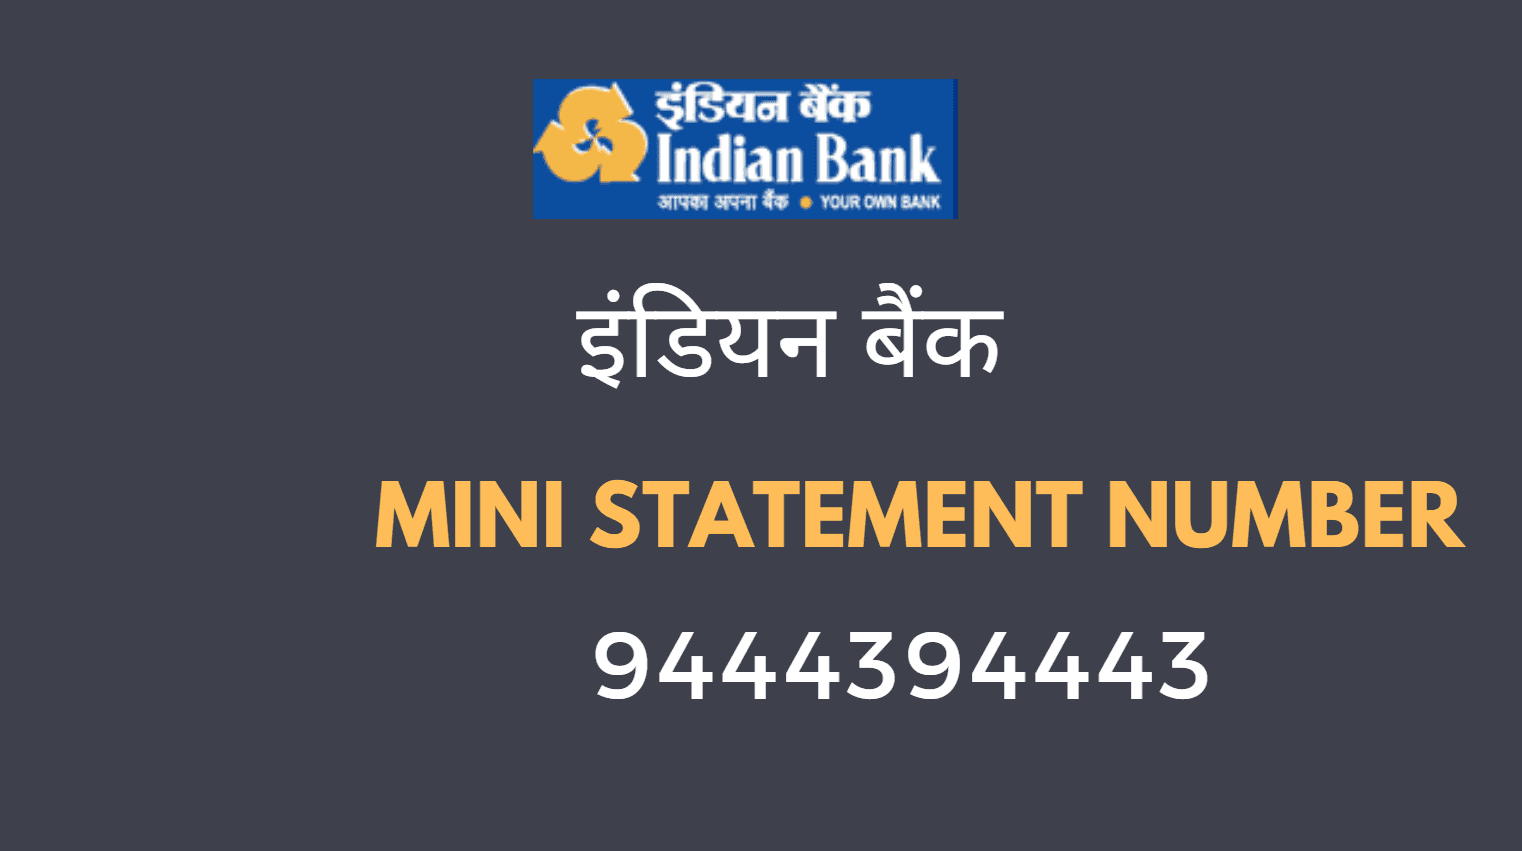 indian bank mini statement toll free number